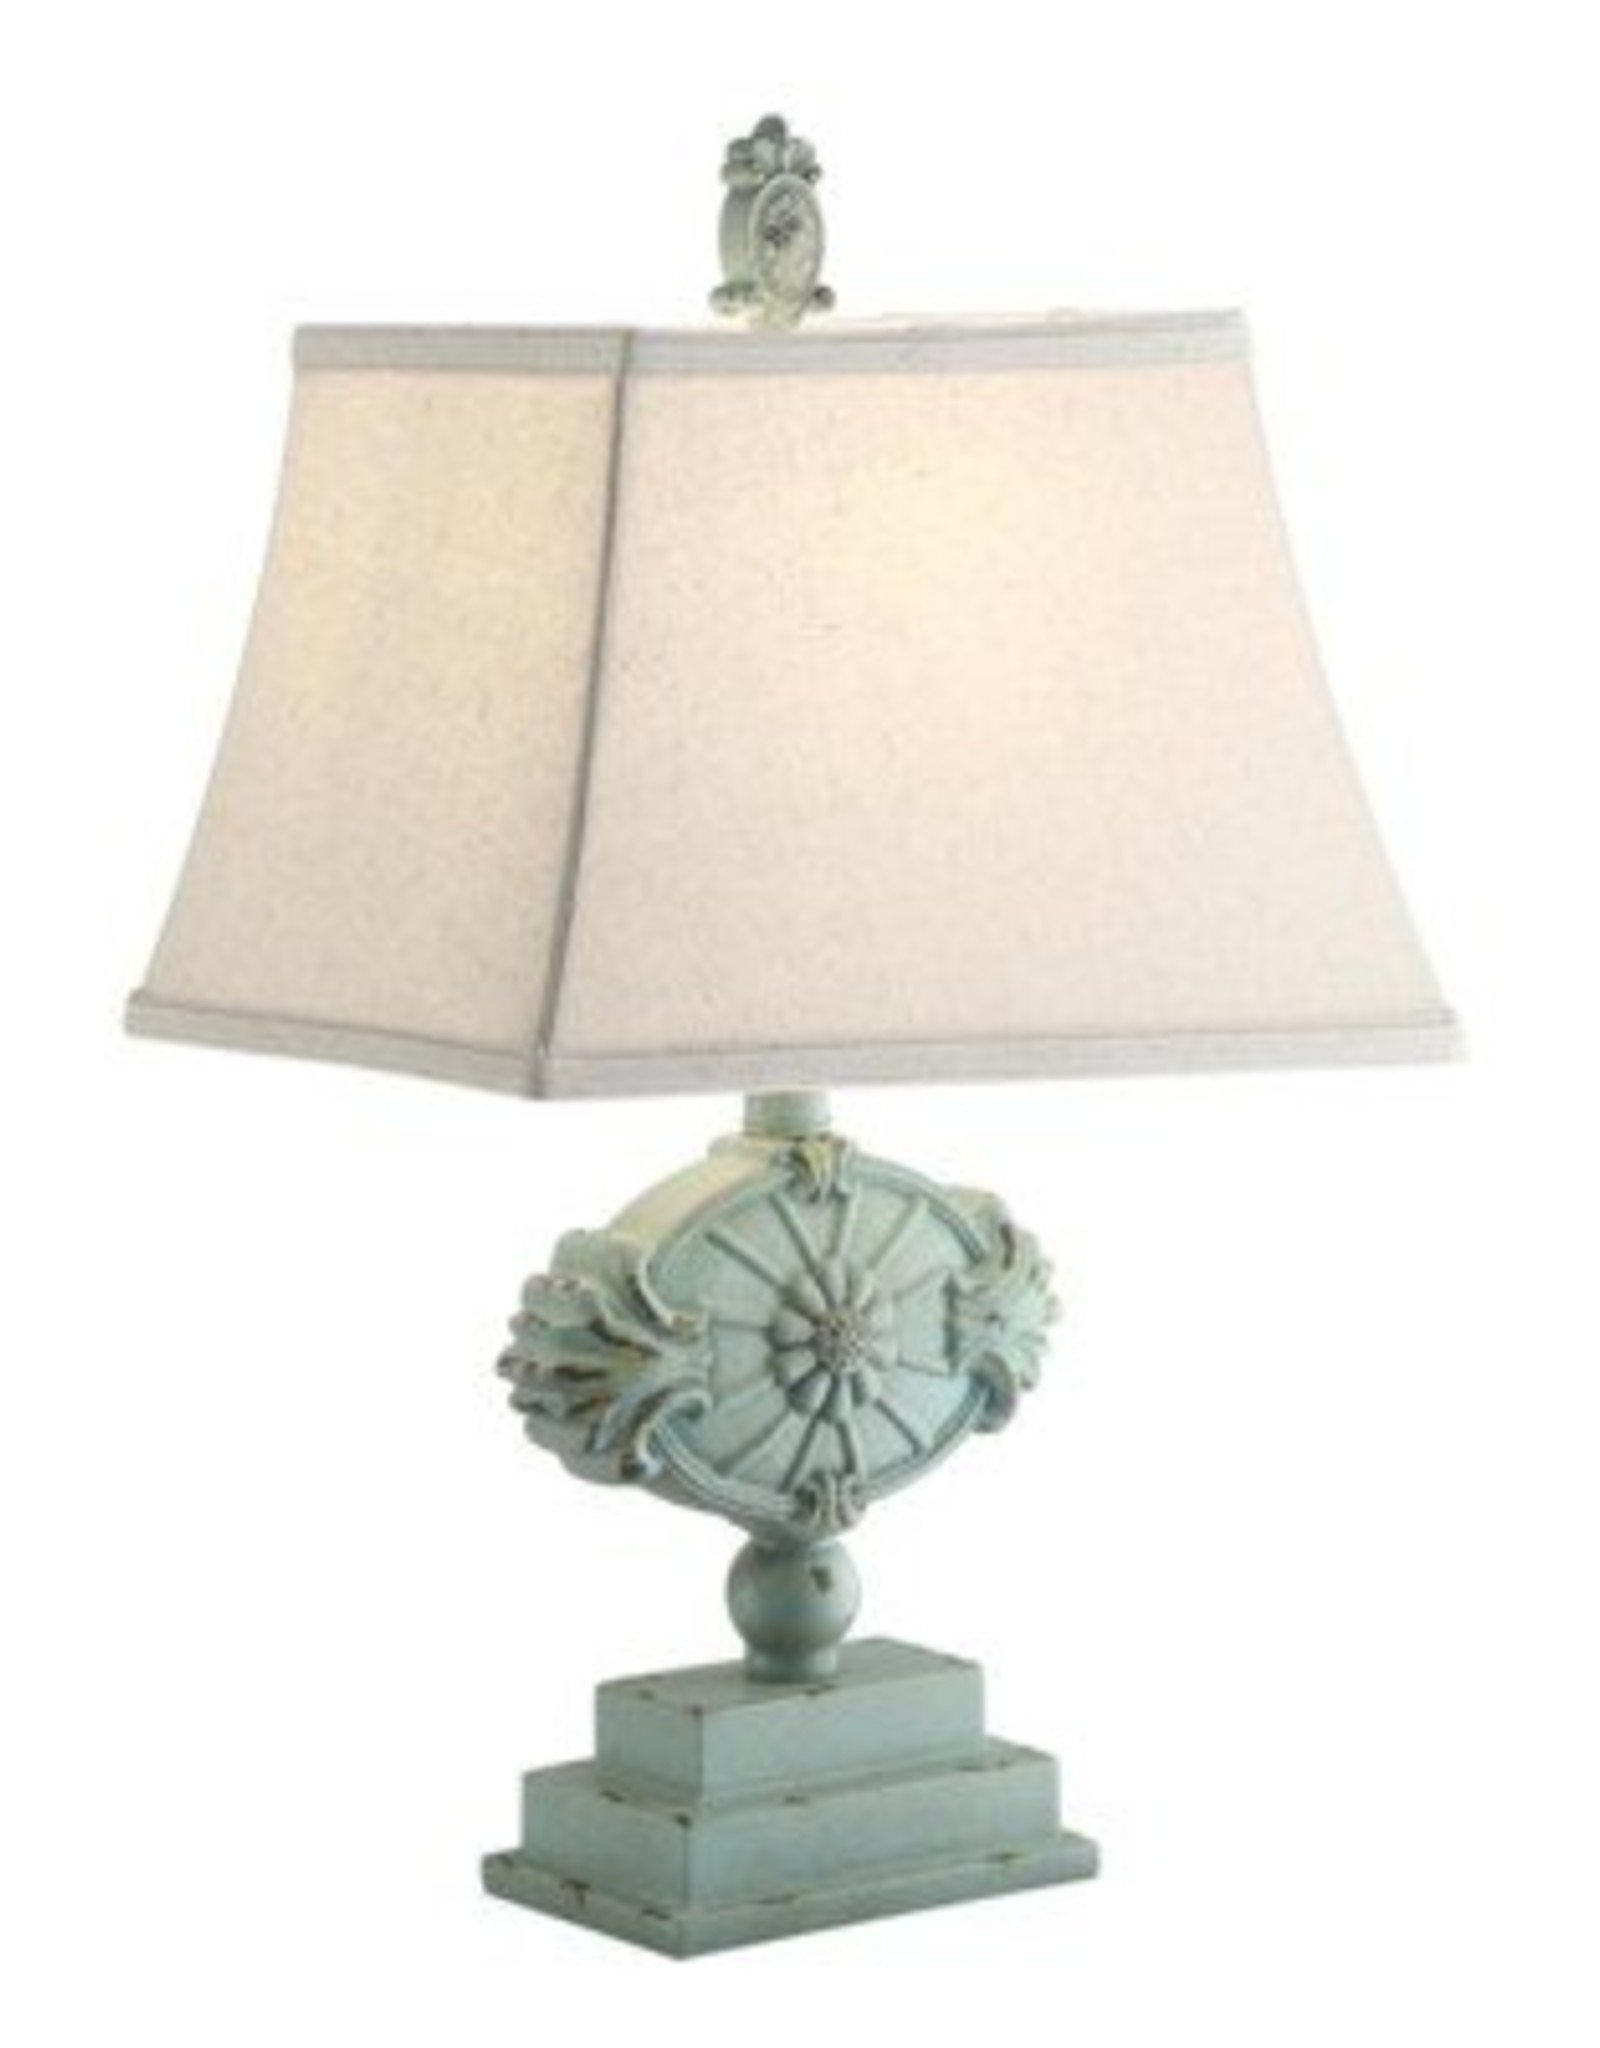 Crestview Kaleen Green Distressed Table Lamp w/ Shade